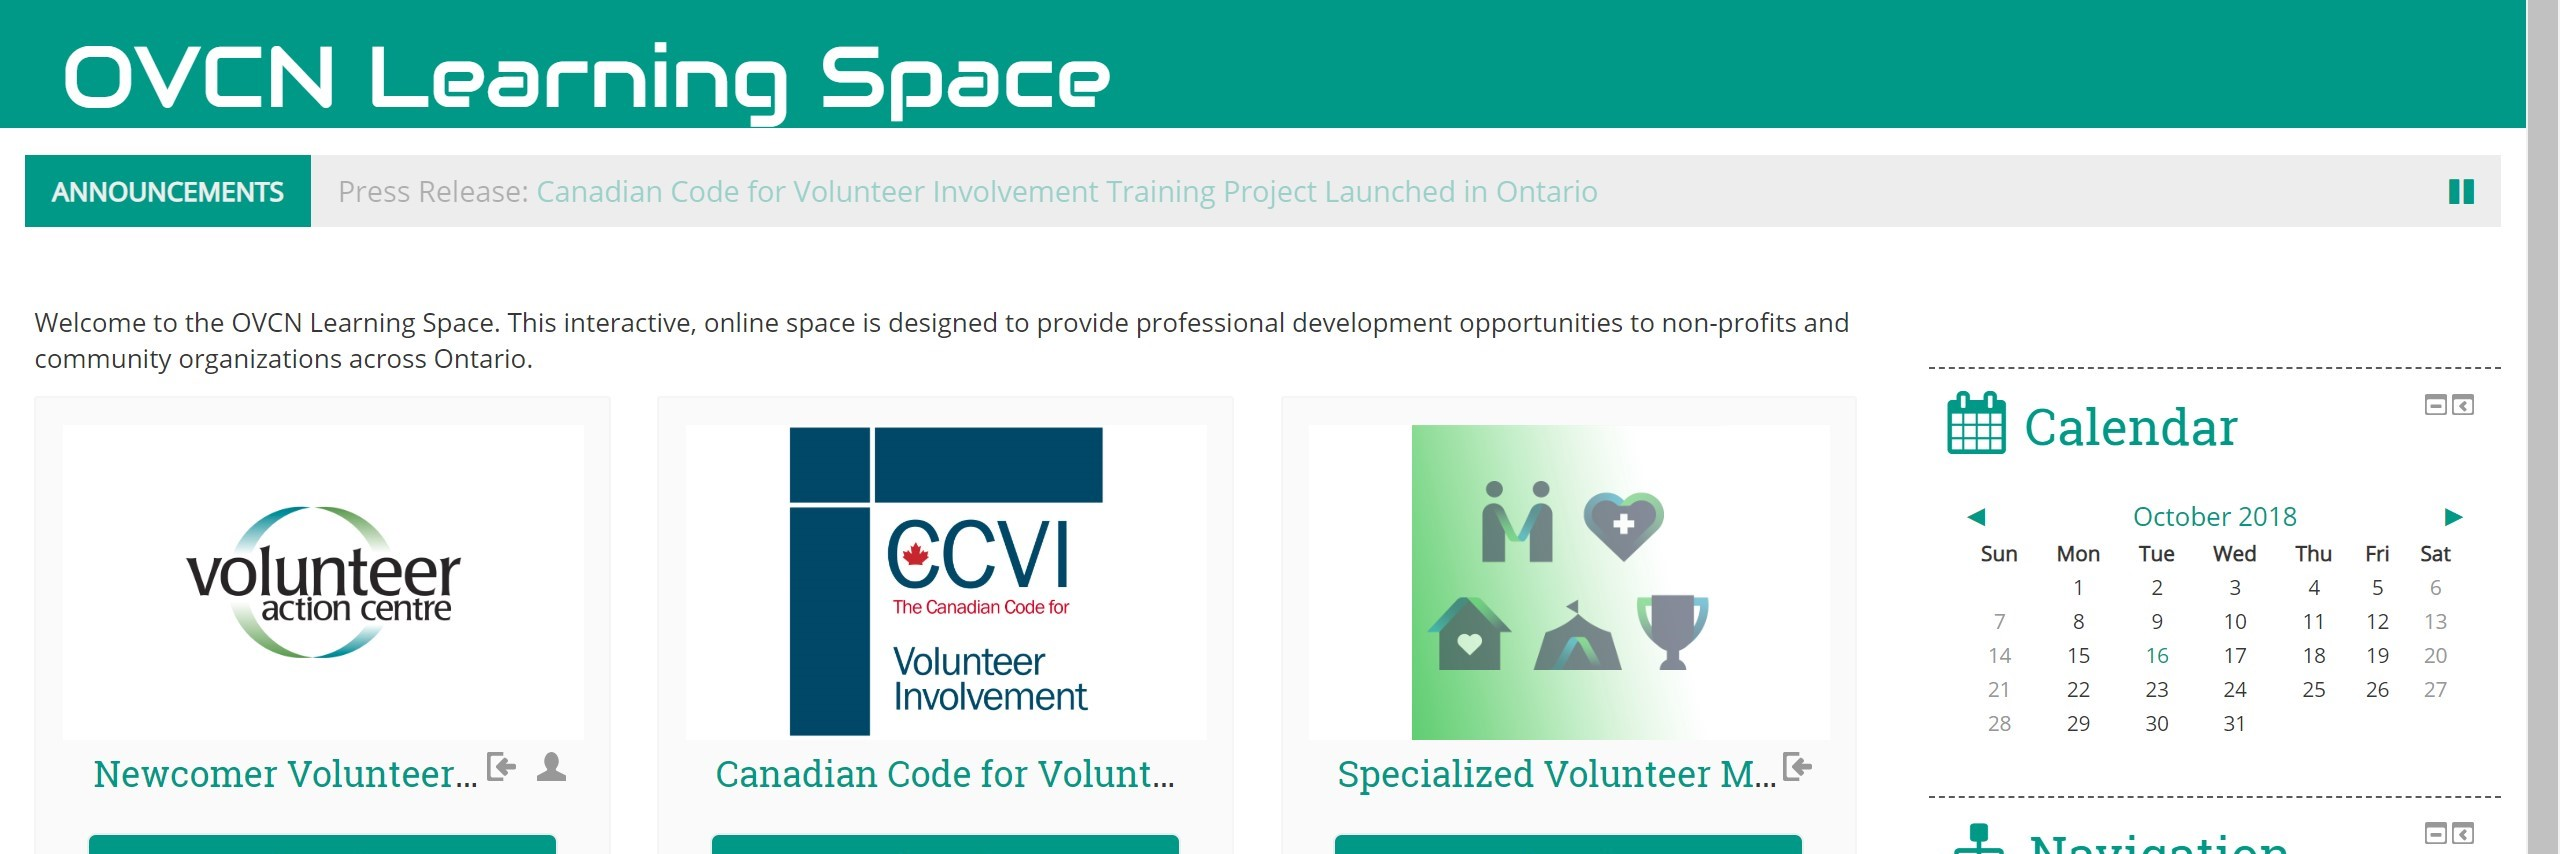 ovcnlearning.ca